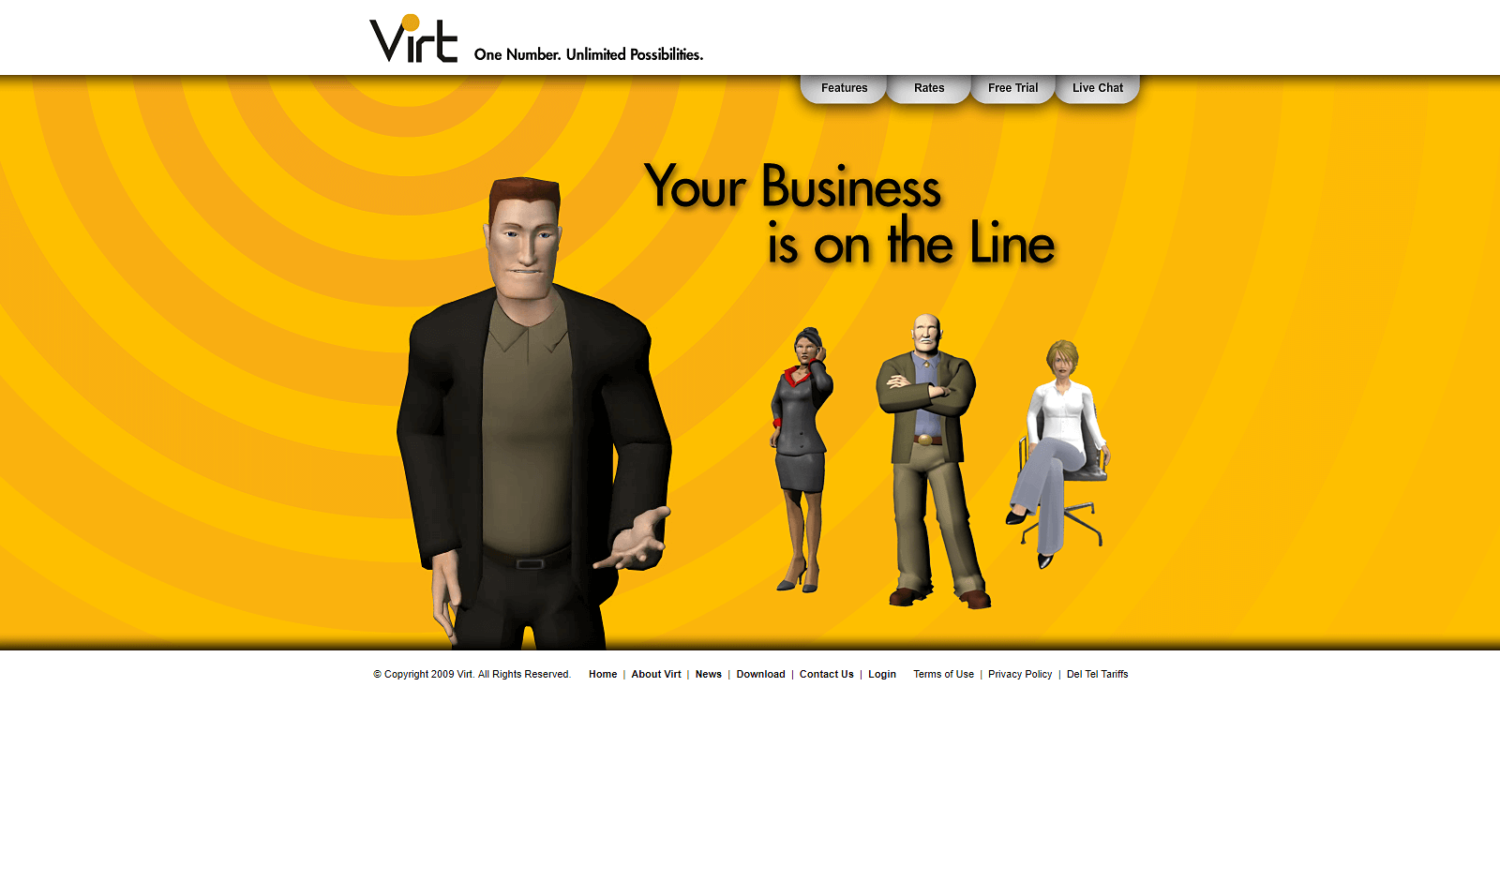 Virt Website